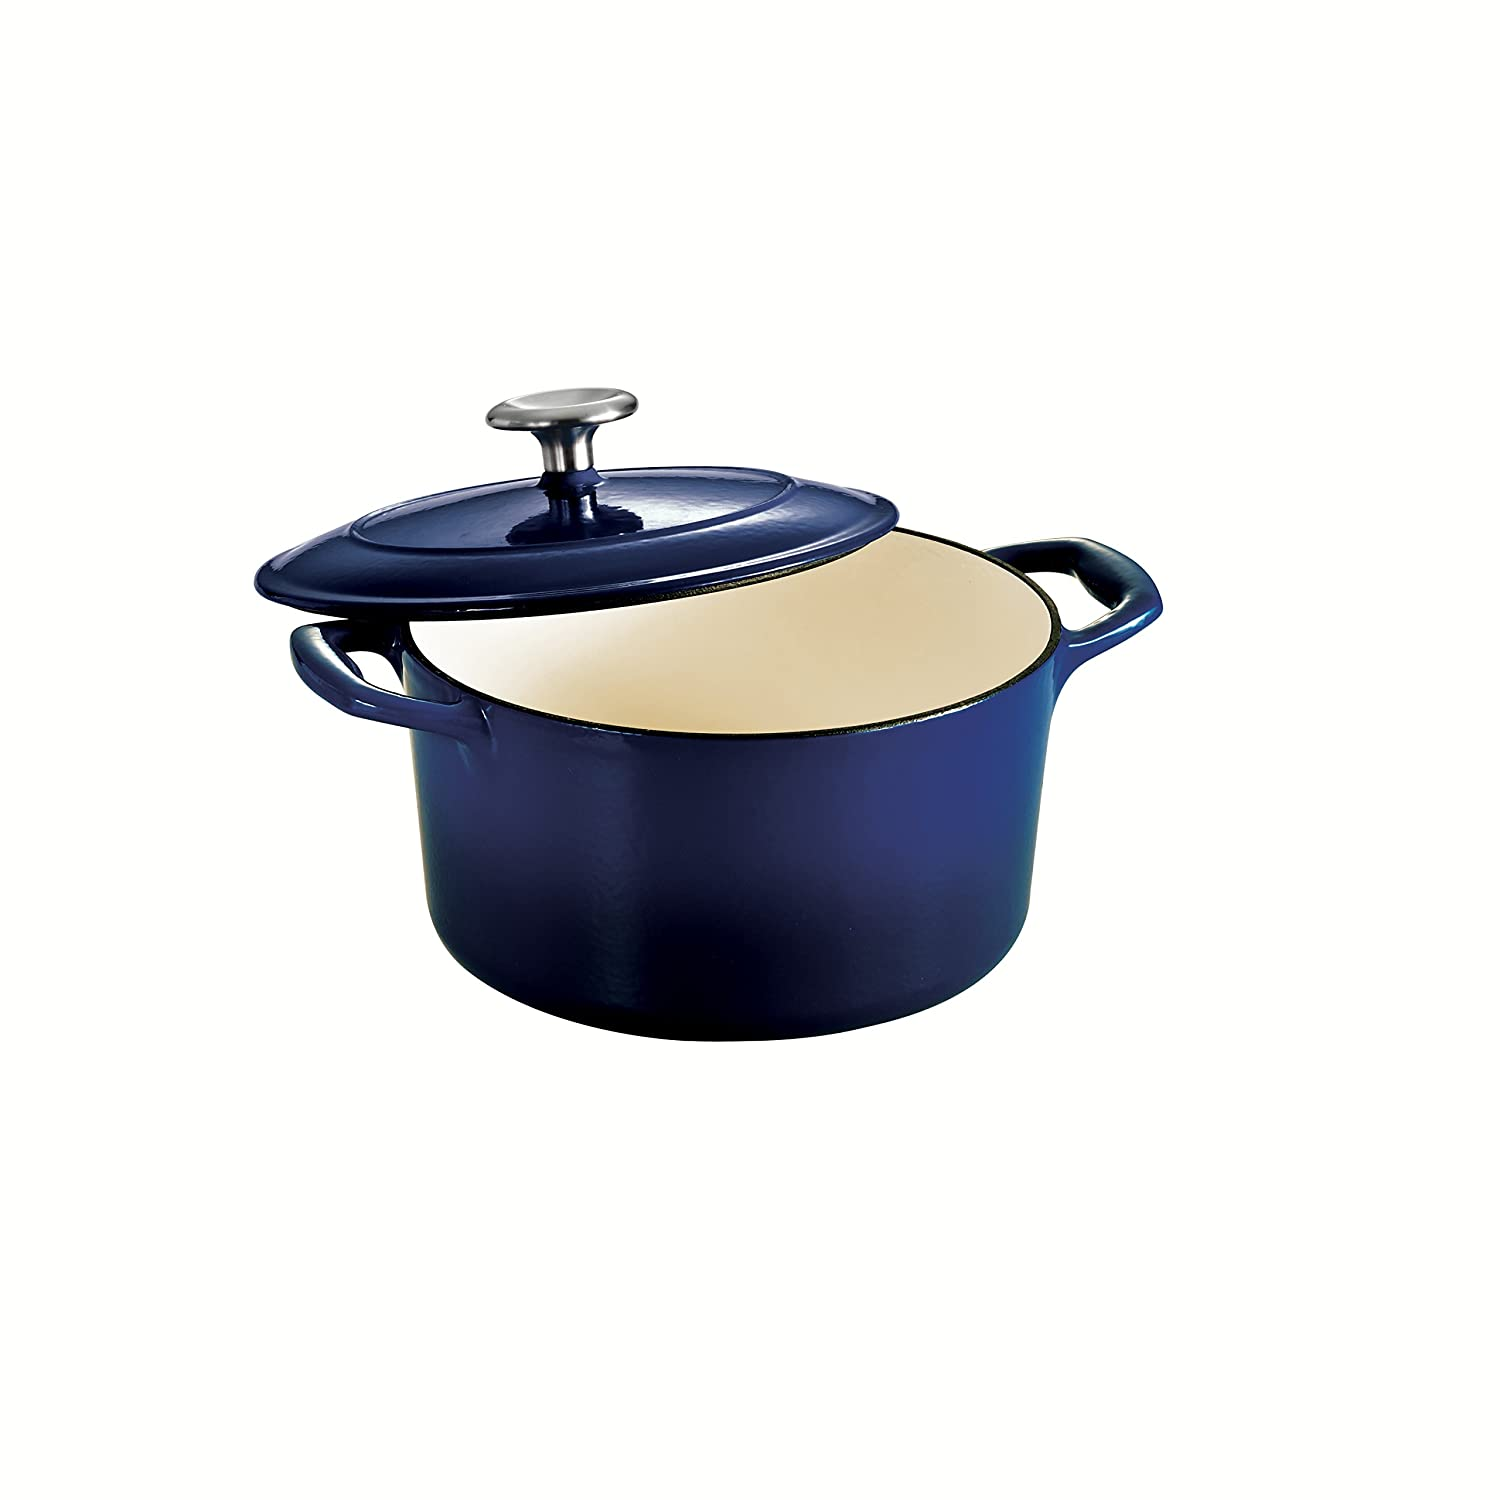 Tramontina 80131/074DS Enameled Cast Iron Covered Round Dutch Oven, 3.5-Quart, Gradated Cobalt